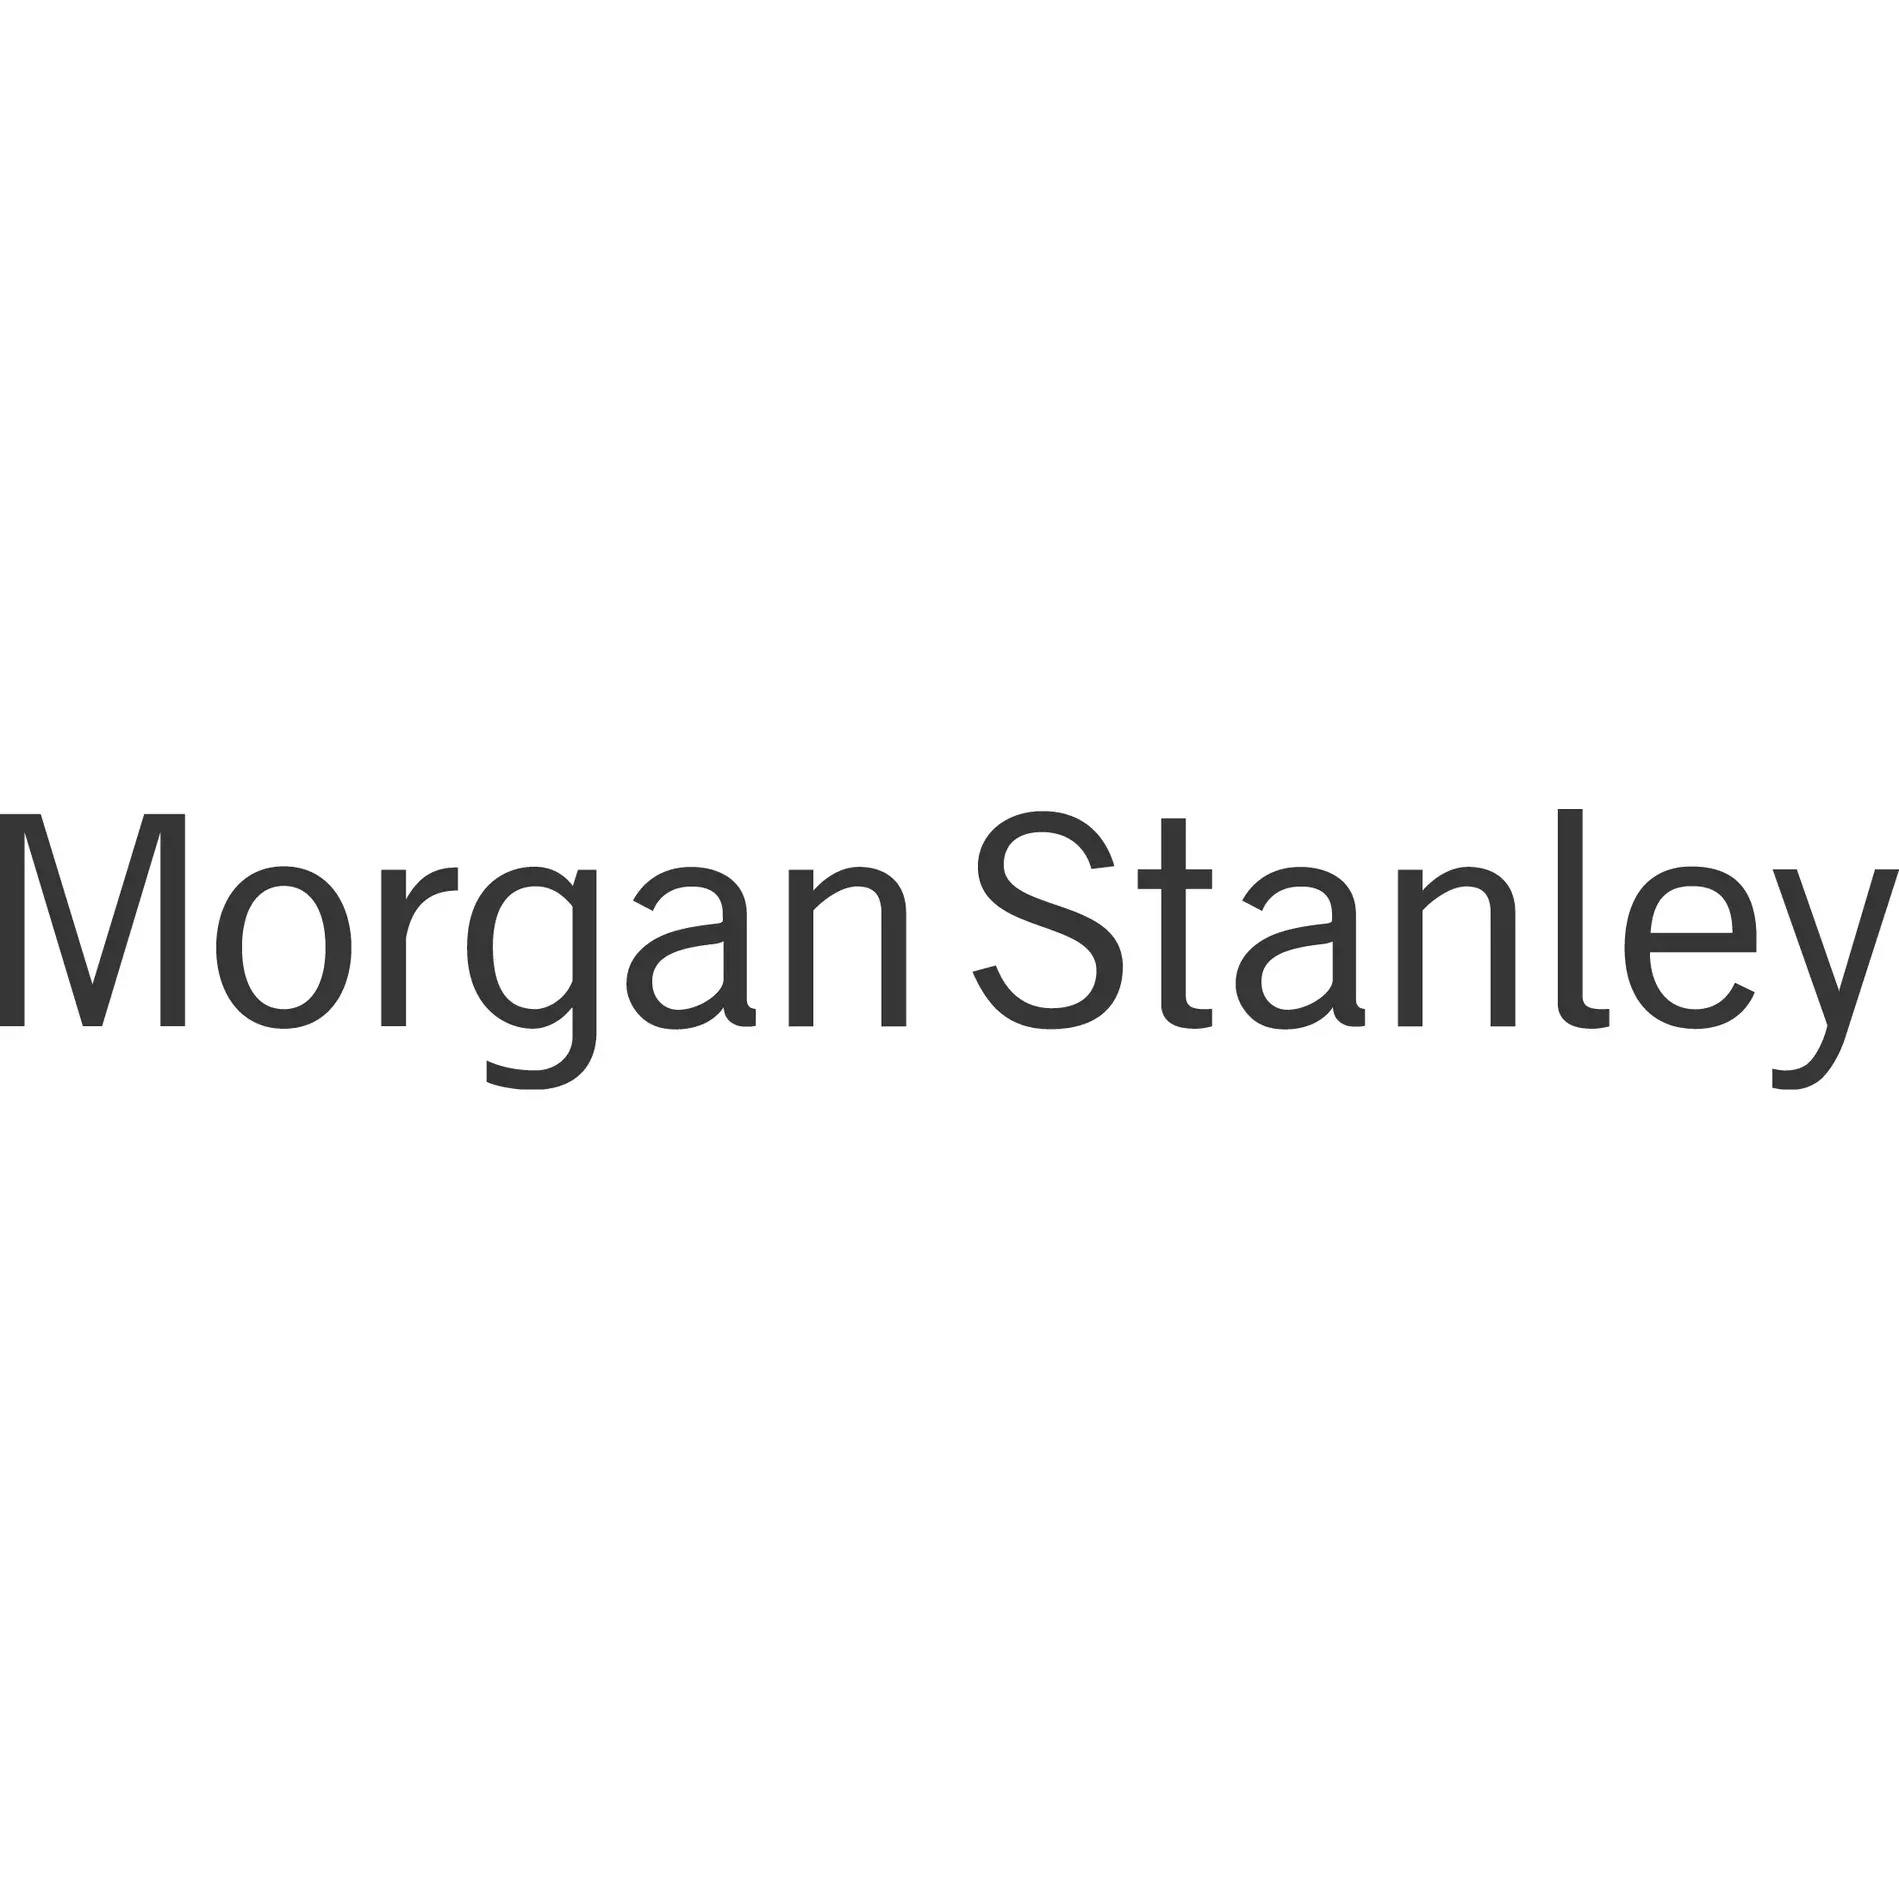 The Zitzmann Group - Morgan Stanley